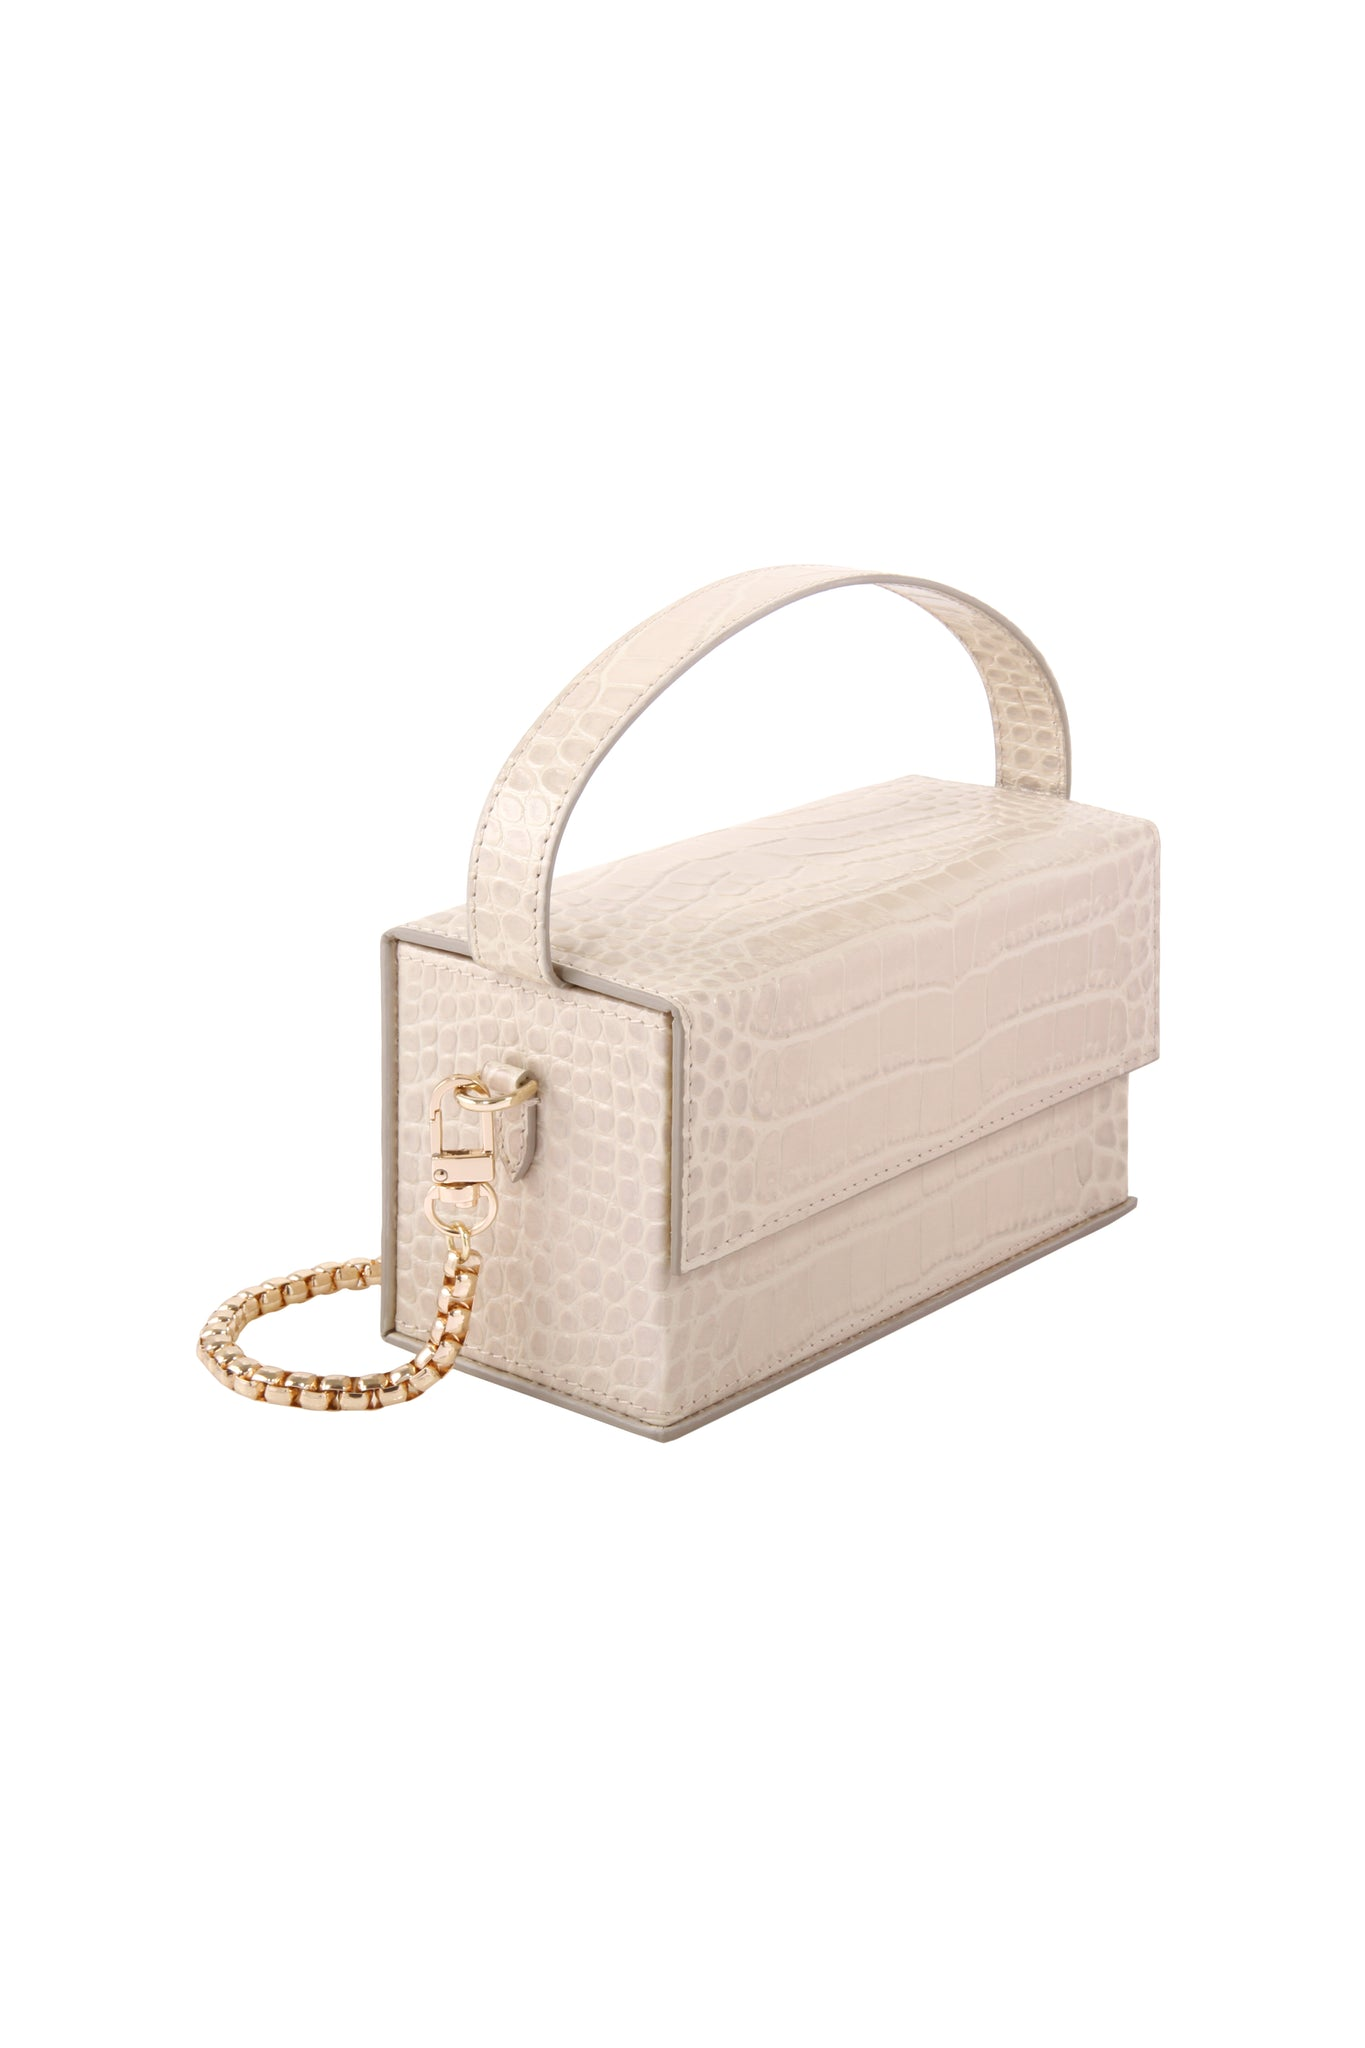 IDA Beige Croc (Small) with Chain